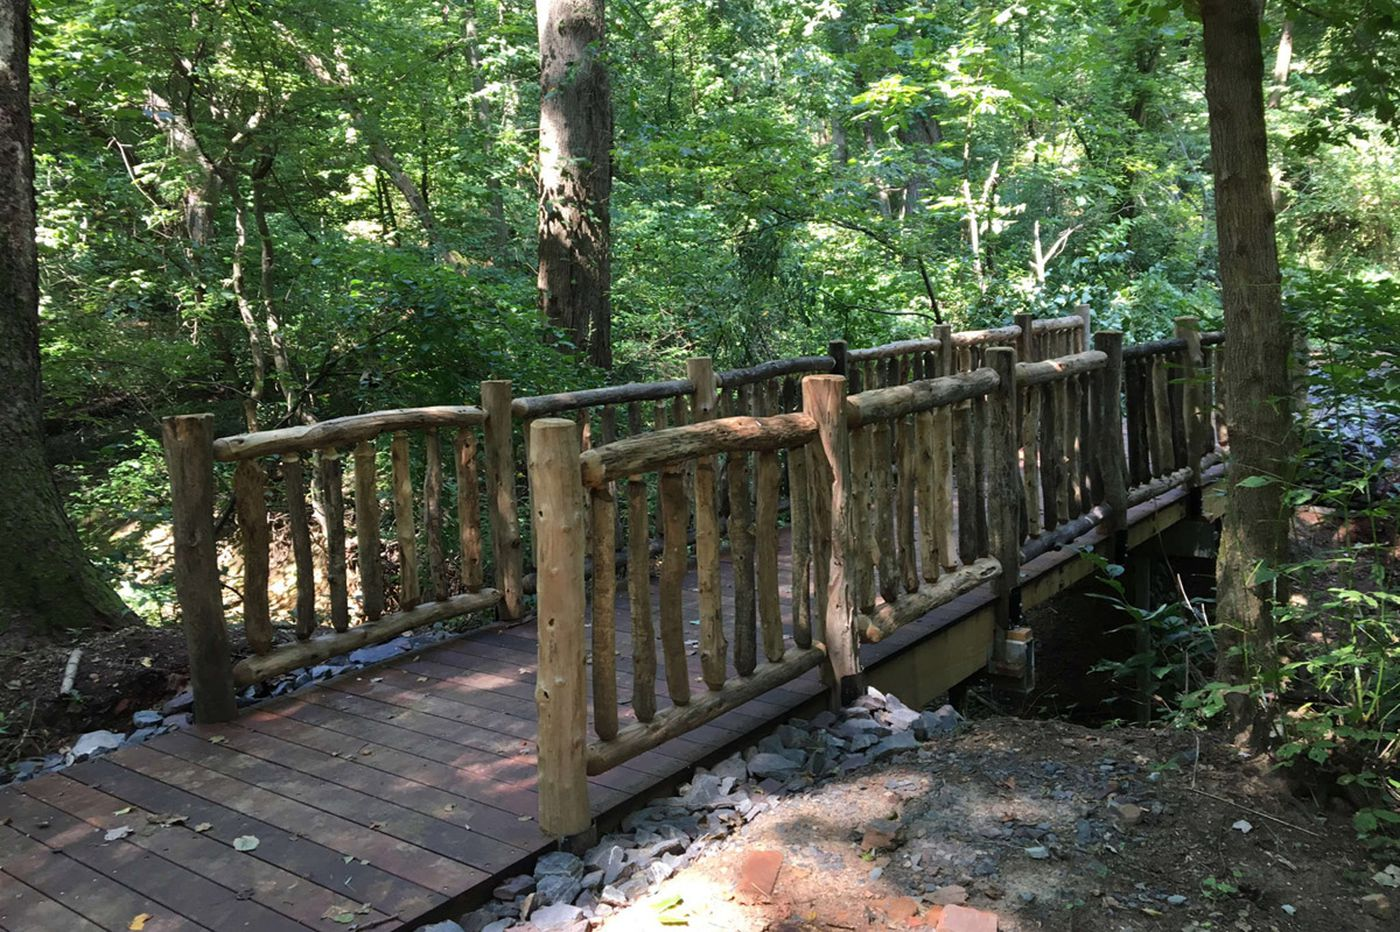 Poconos-like hiking now available in South Jersey's redone park